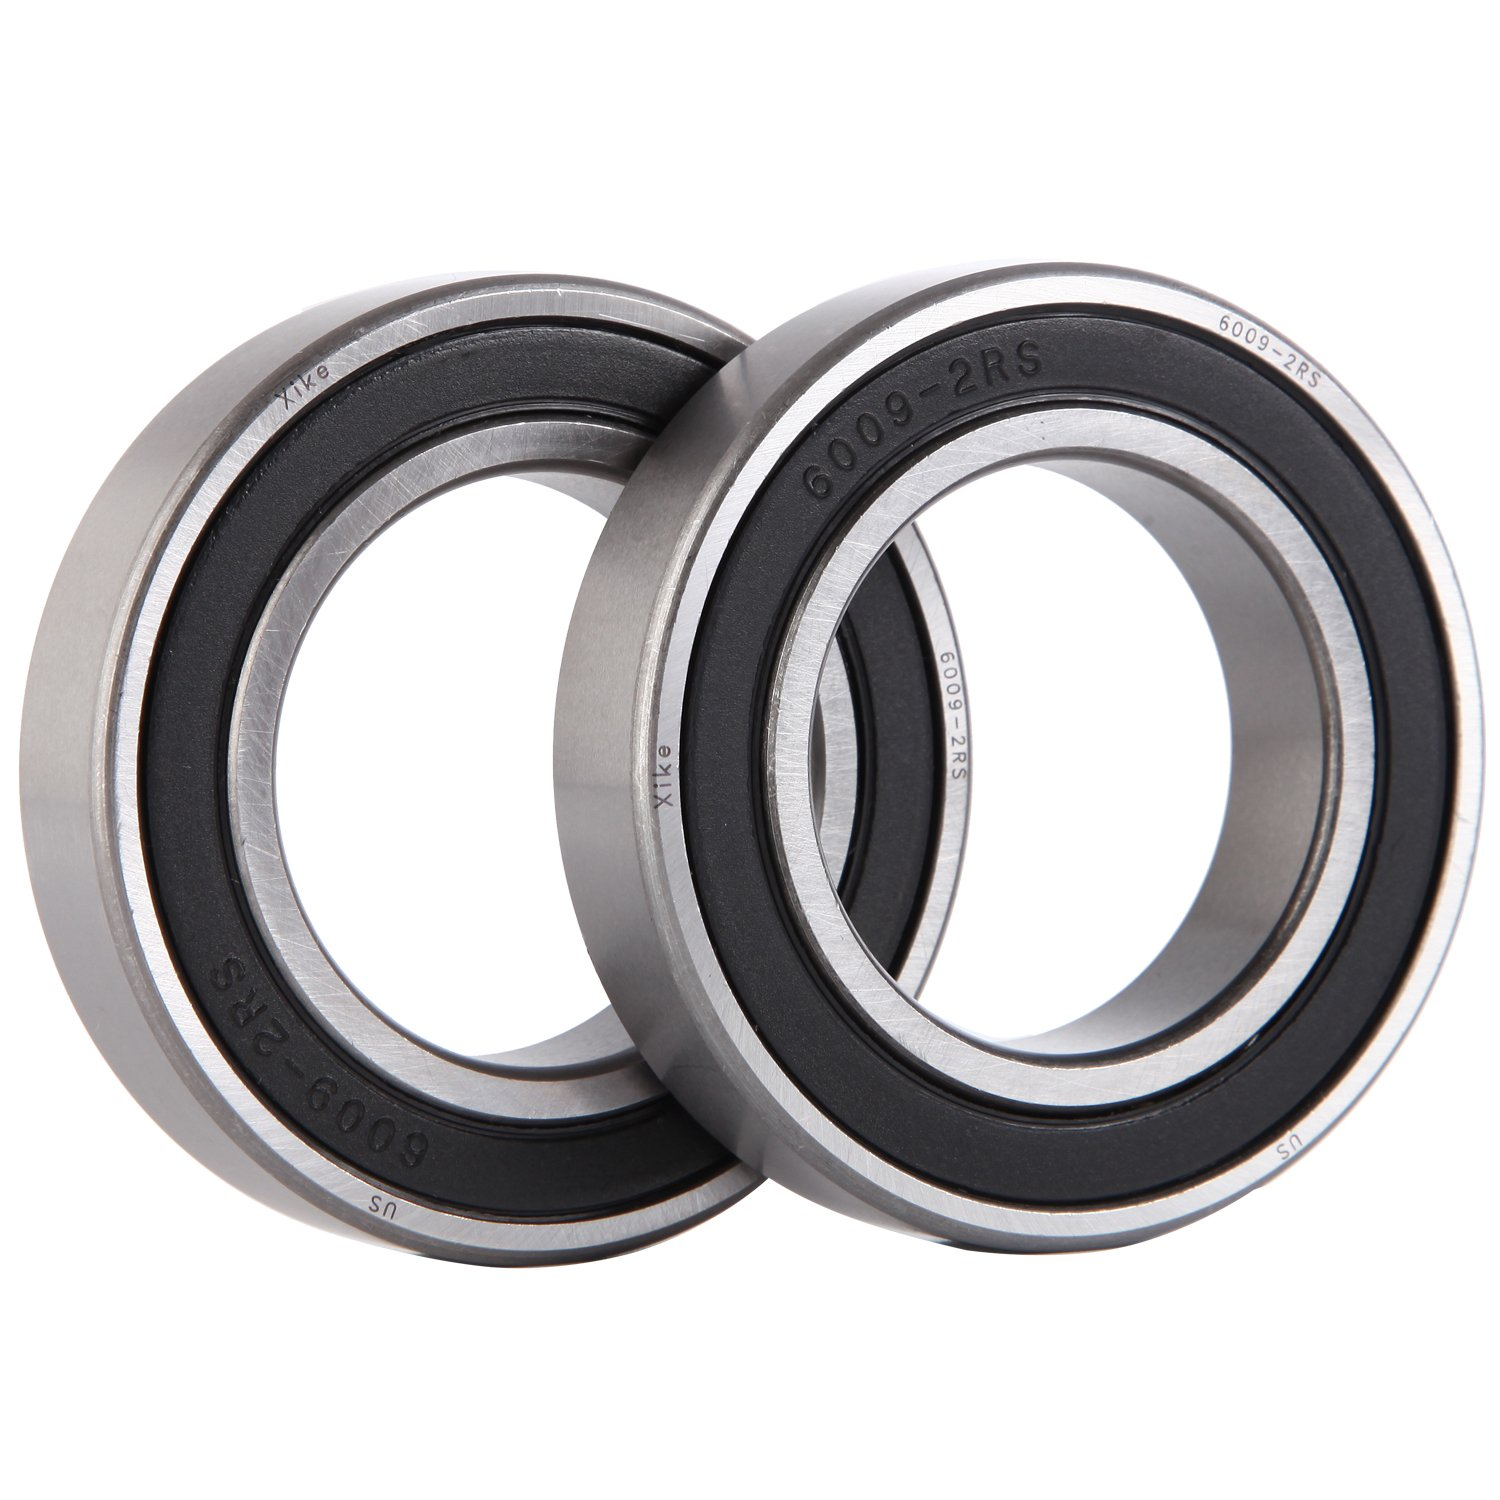 Pre-Lubricated and Stable Performance and Cost Effective XiKe 4 Pcs 6009-2RS Double Rubber Seal Bearings 45x75x16mm Deep Groove Ball Bearings.